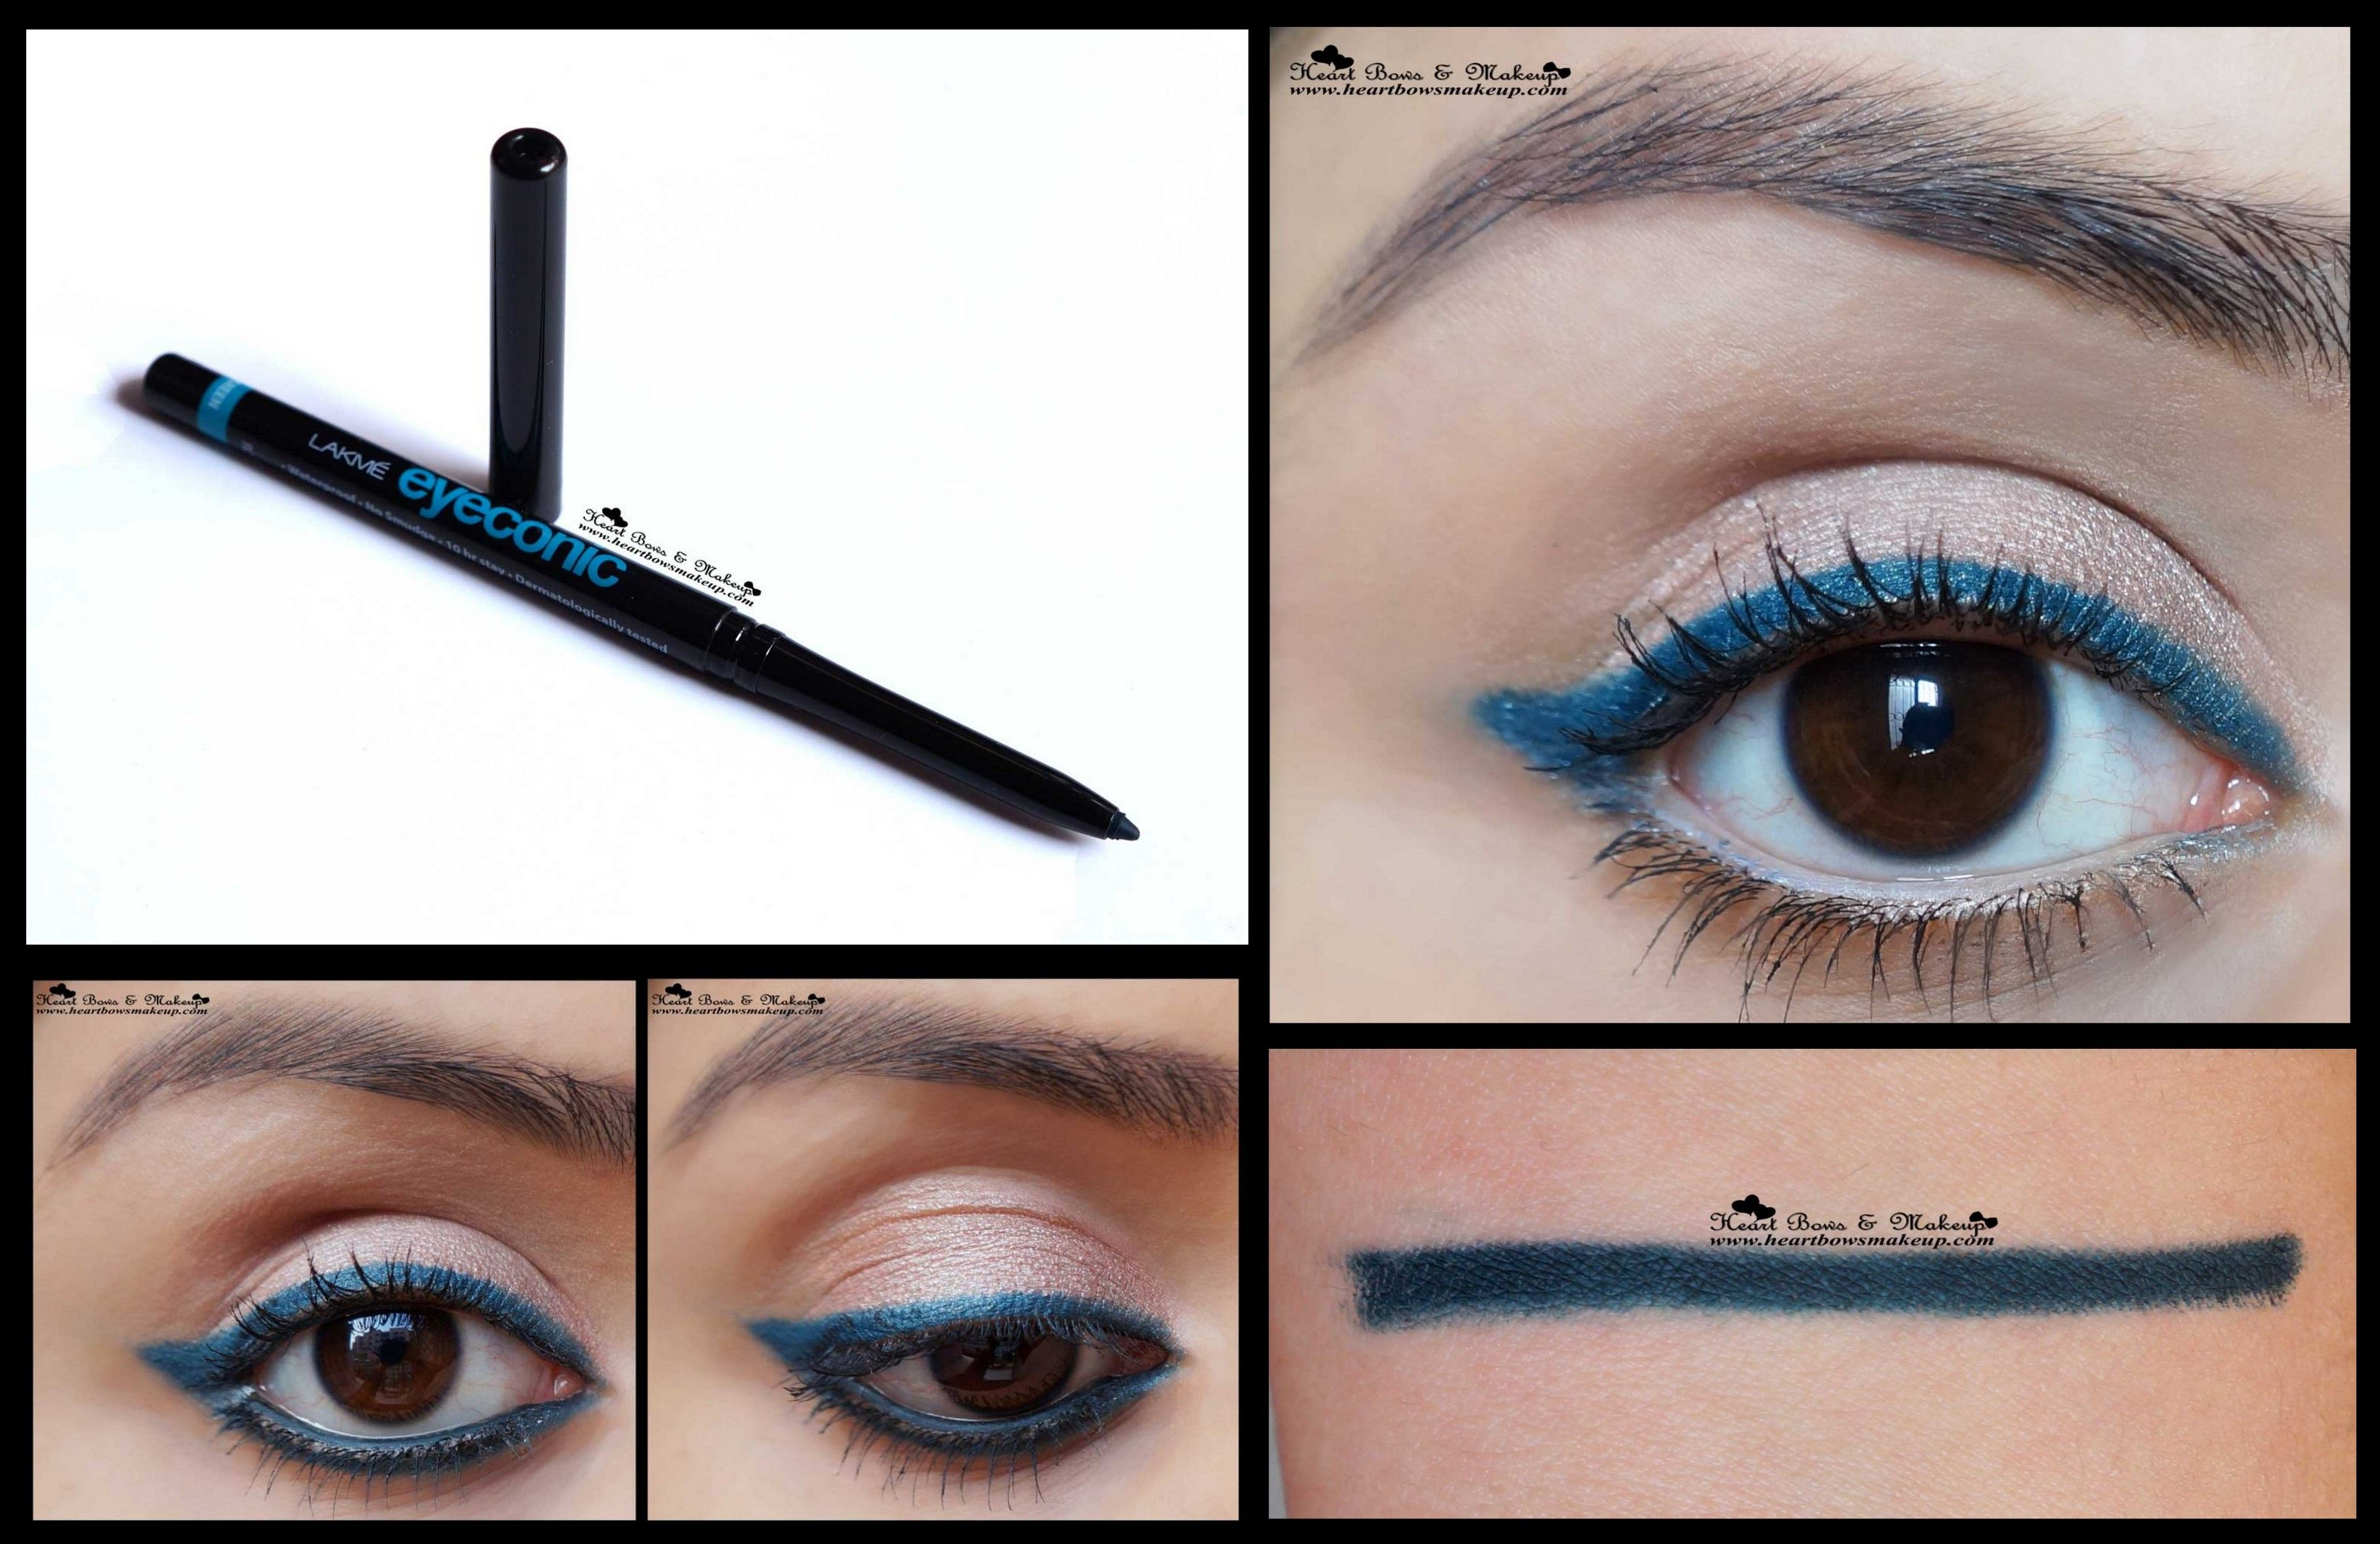 Pin by Heart Bows & Makeup on ♥ Eyemakeup Product Reviews